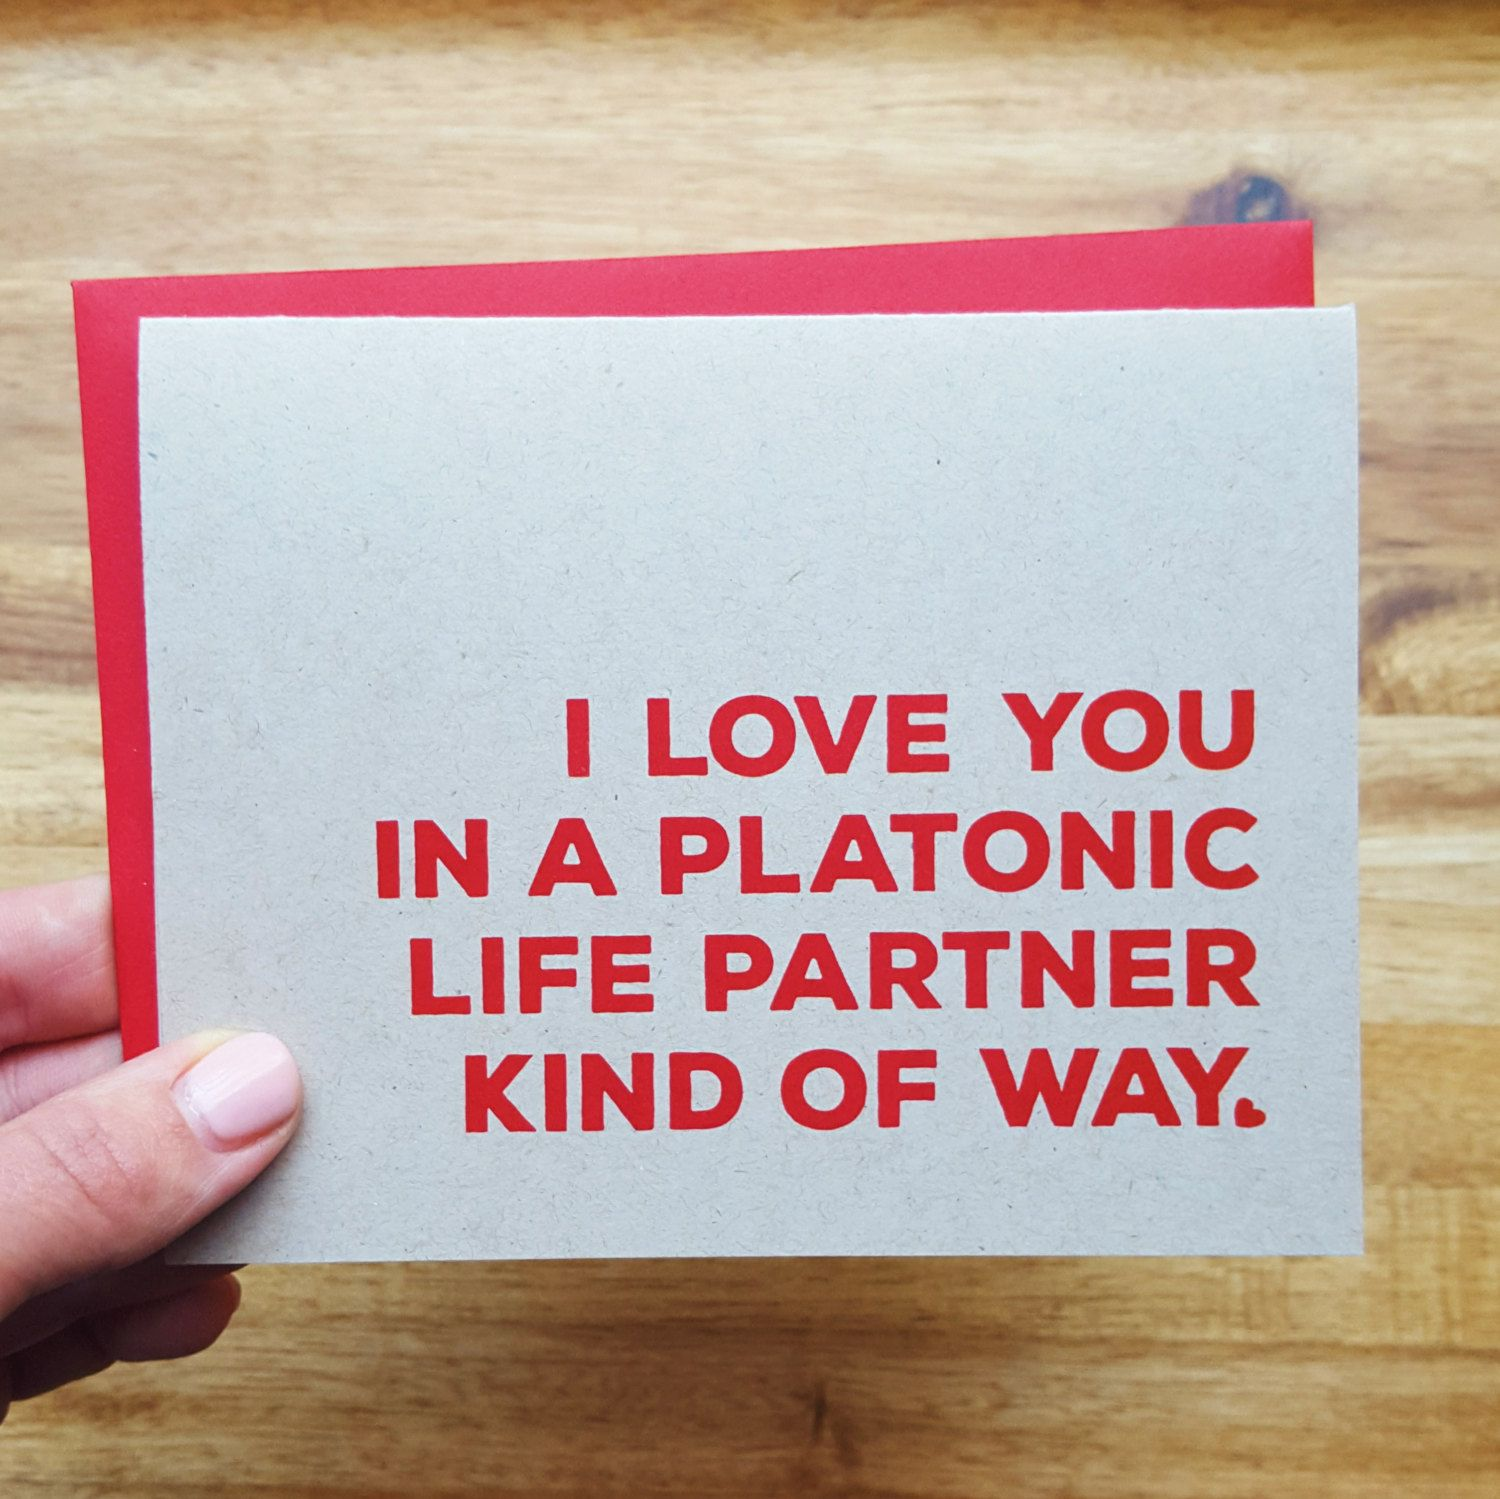 DaviePaperCo - Funny Friend Love Card - I love you in a platonic life partner kind of way - Valentine's Day